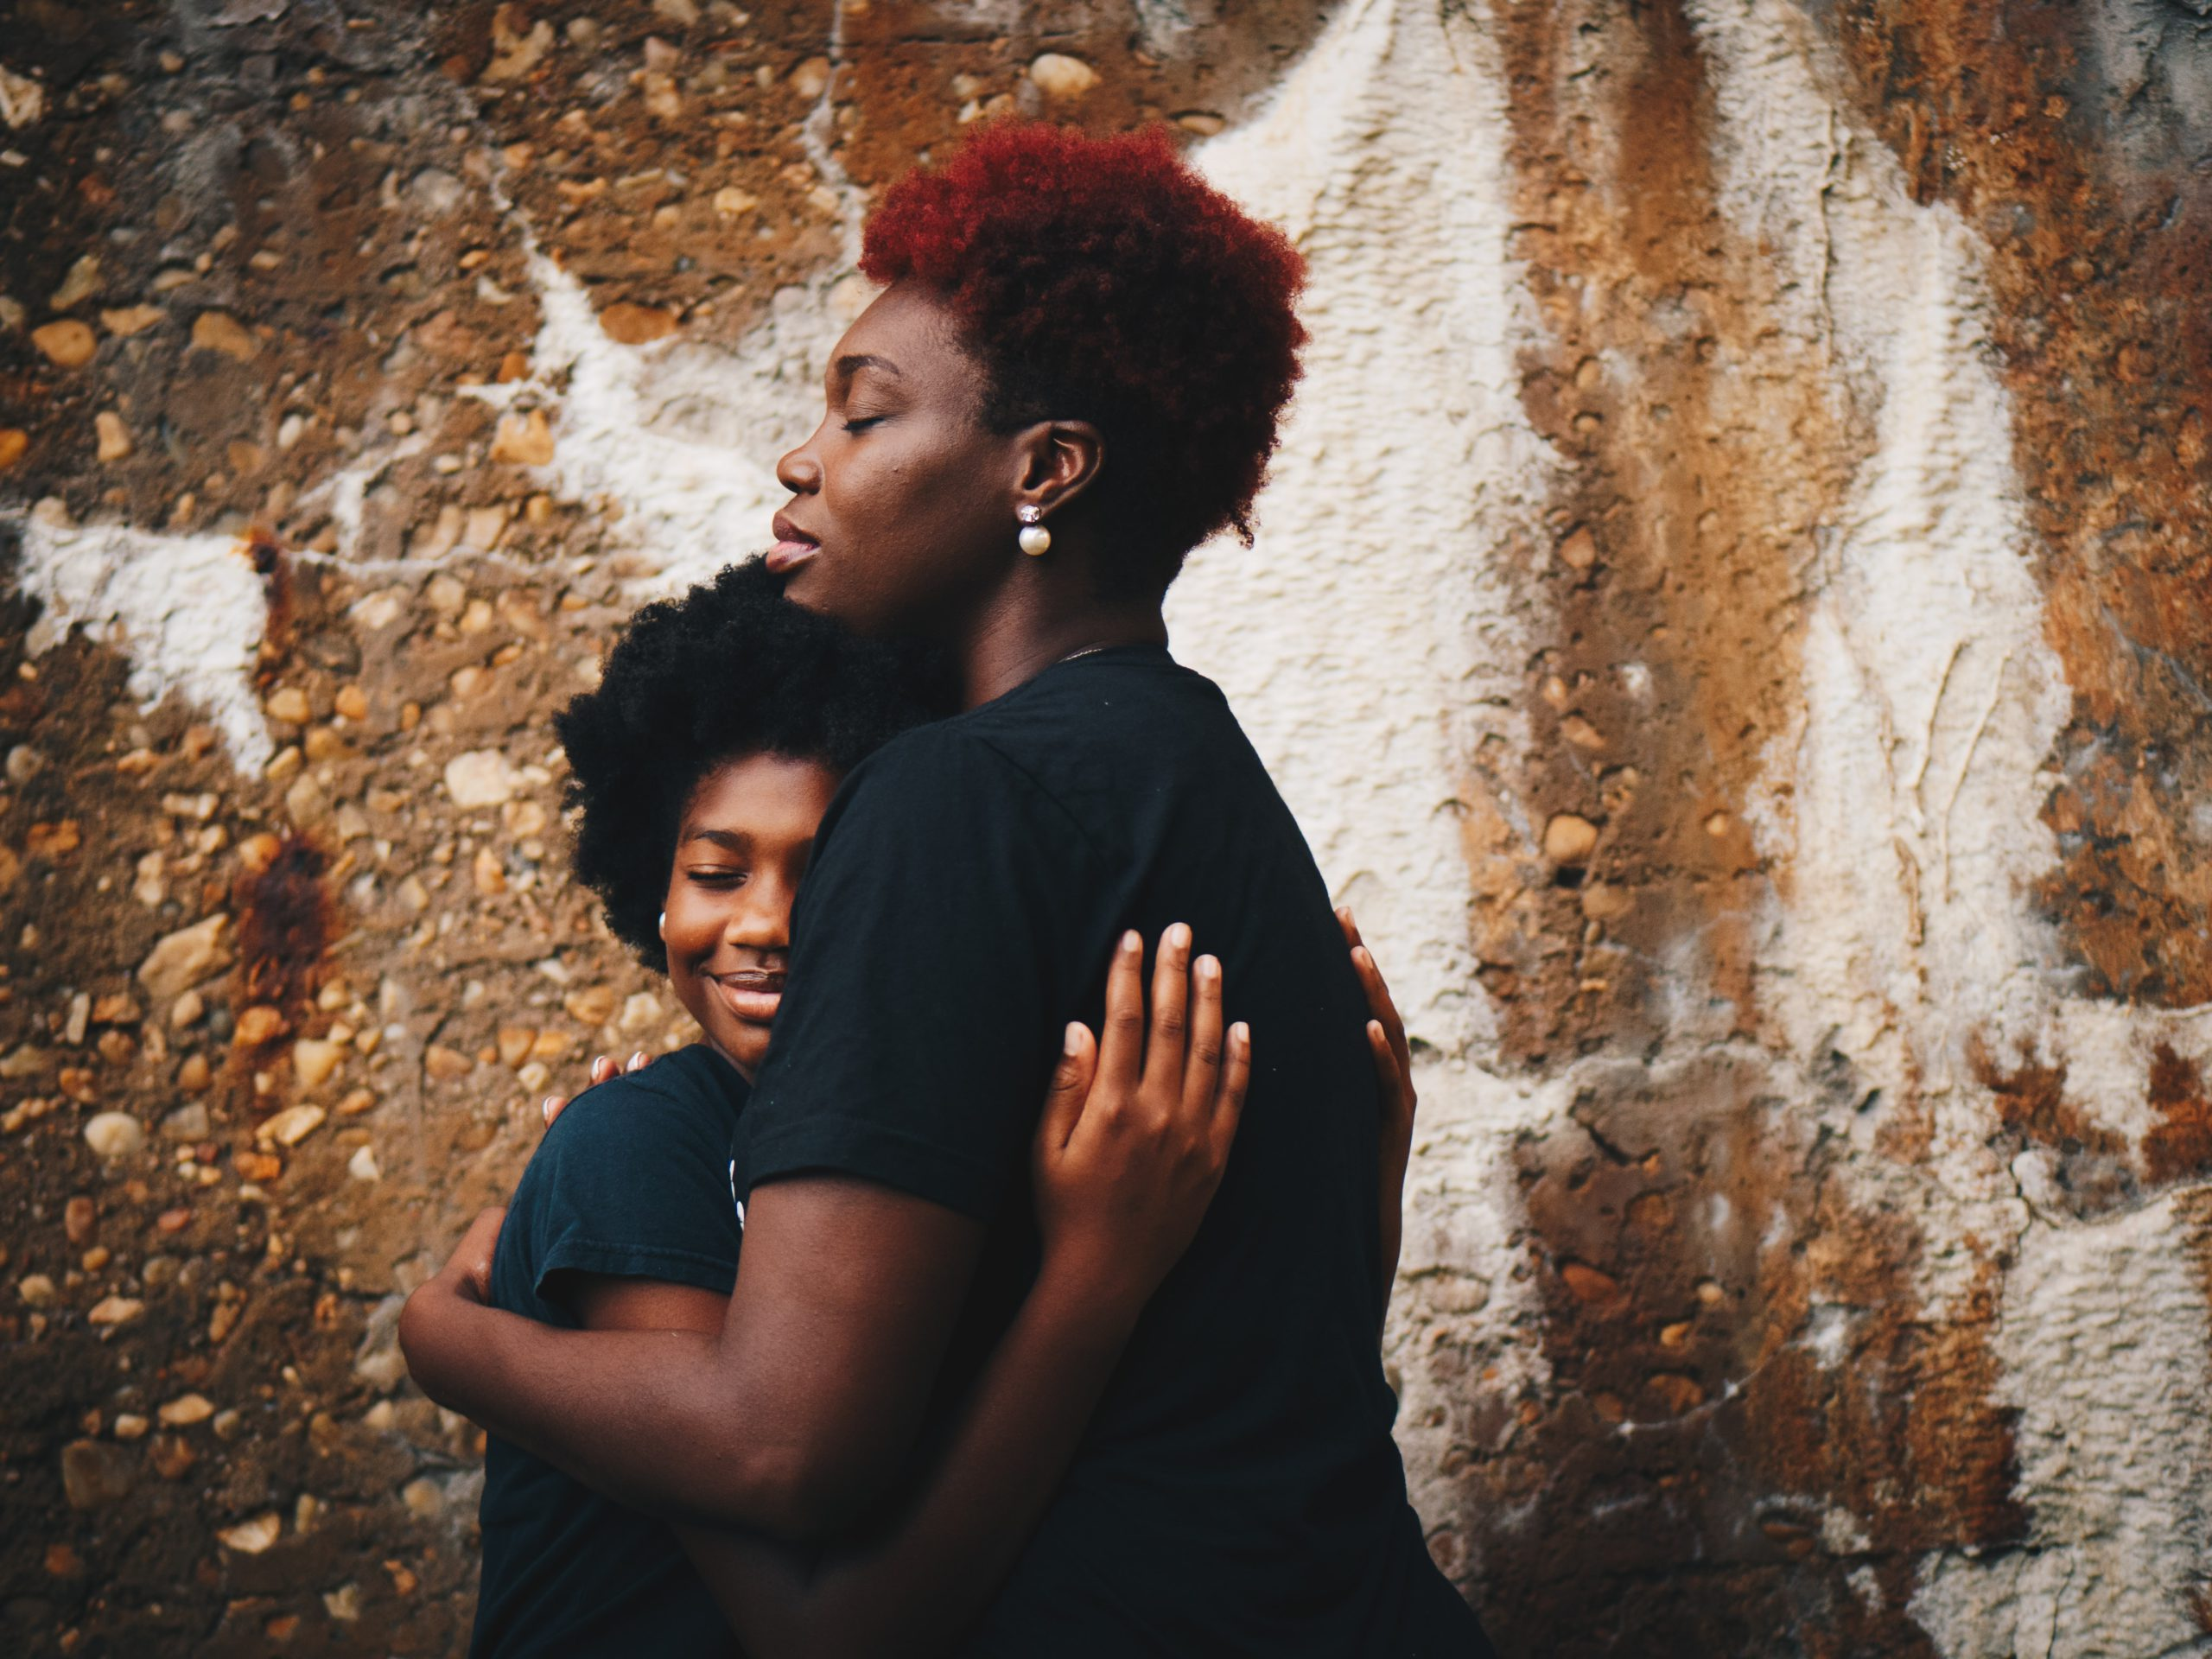 Sex and dating as a single parent: tips for finding balance